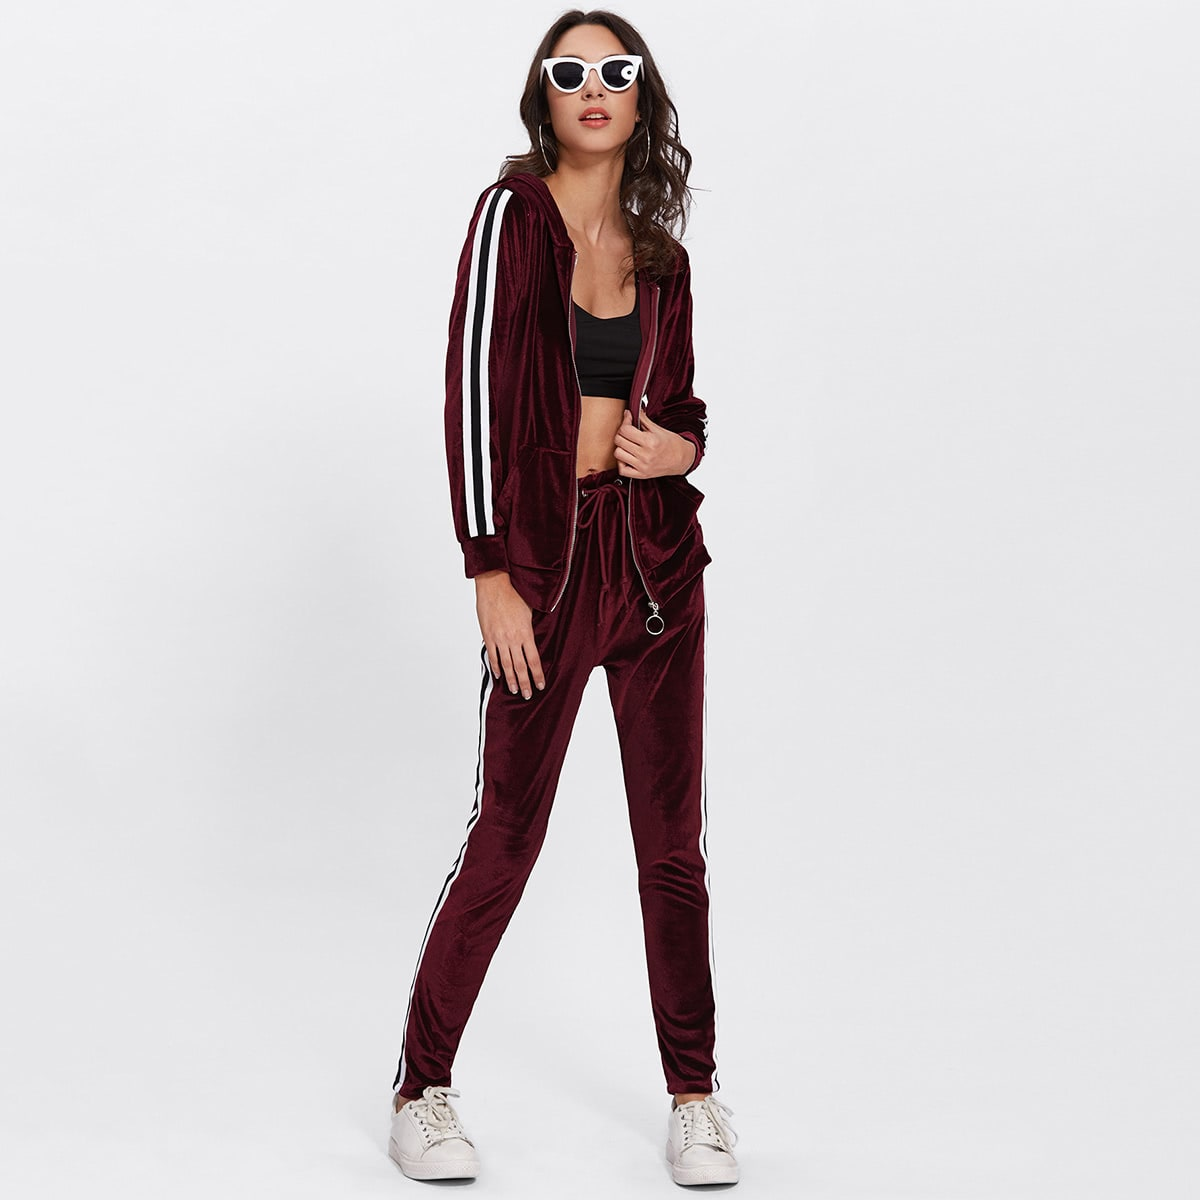 Contrast Stripe Side Velvet Hoodie And Pants in Burgundy by ROMWE on GOOFASH